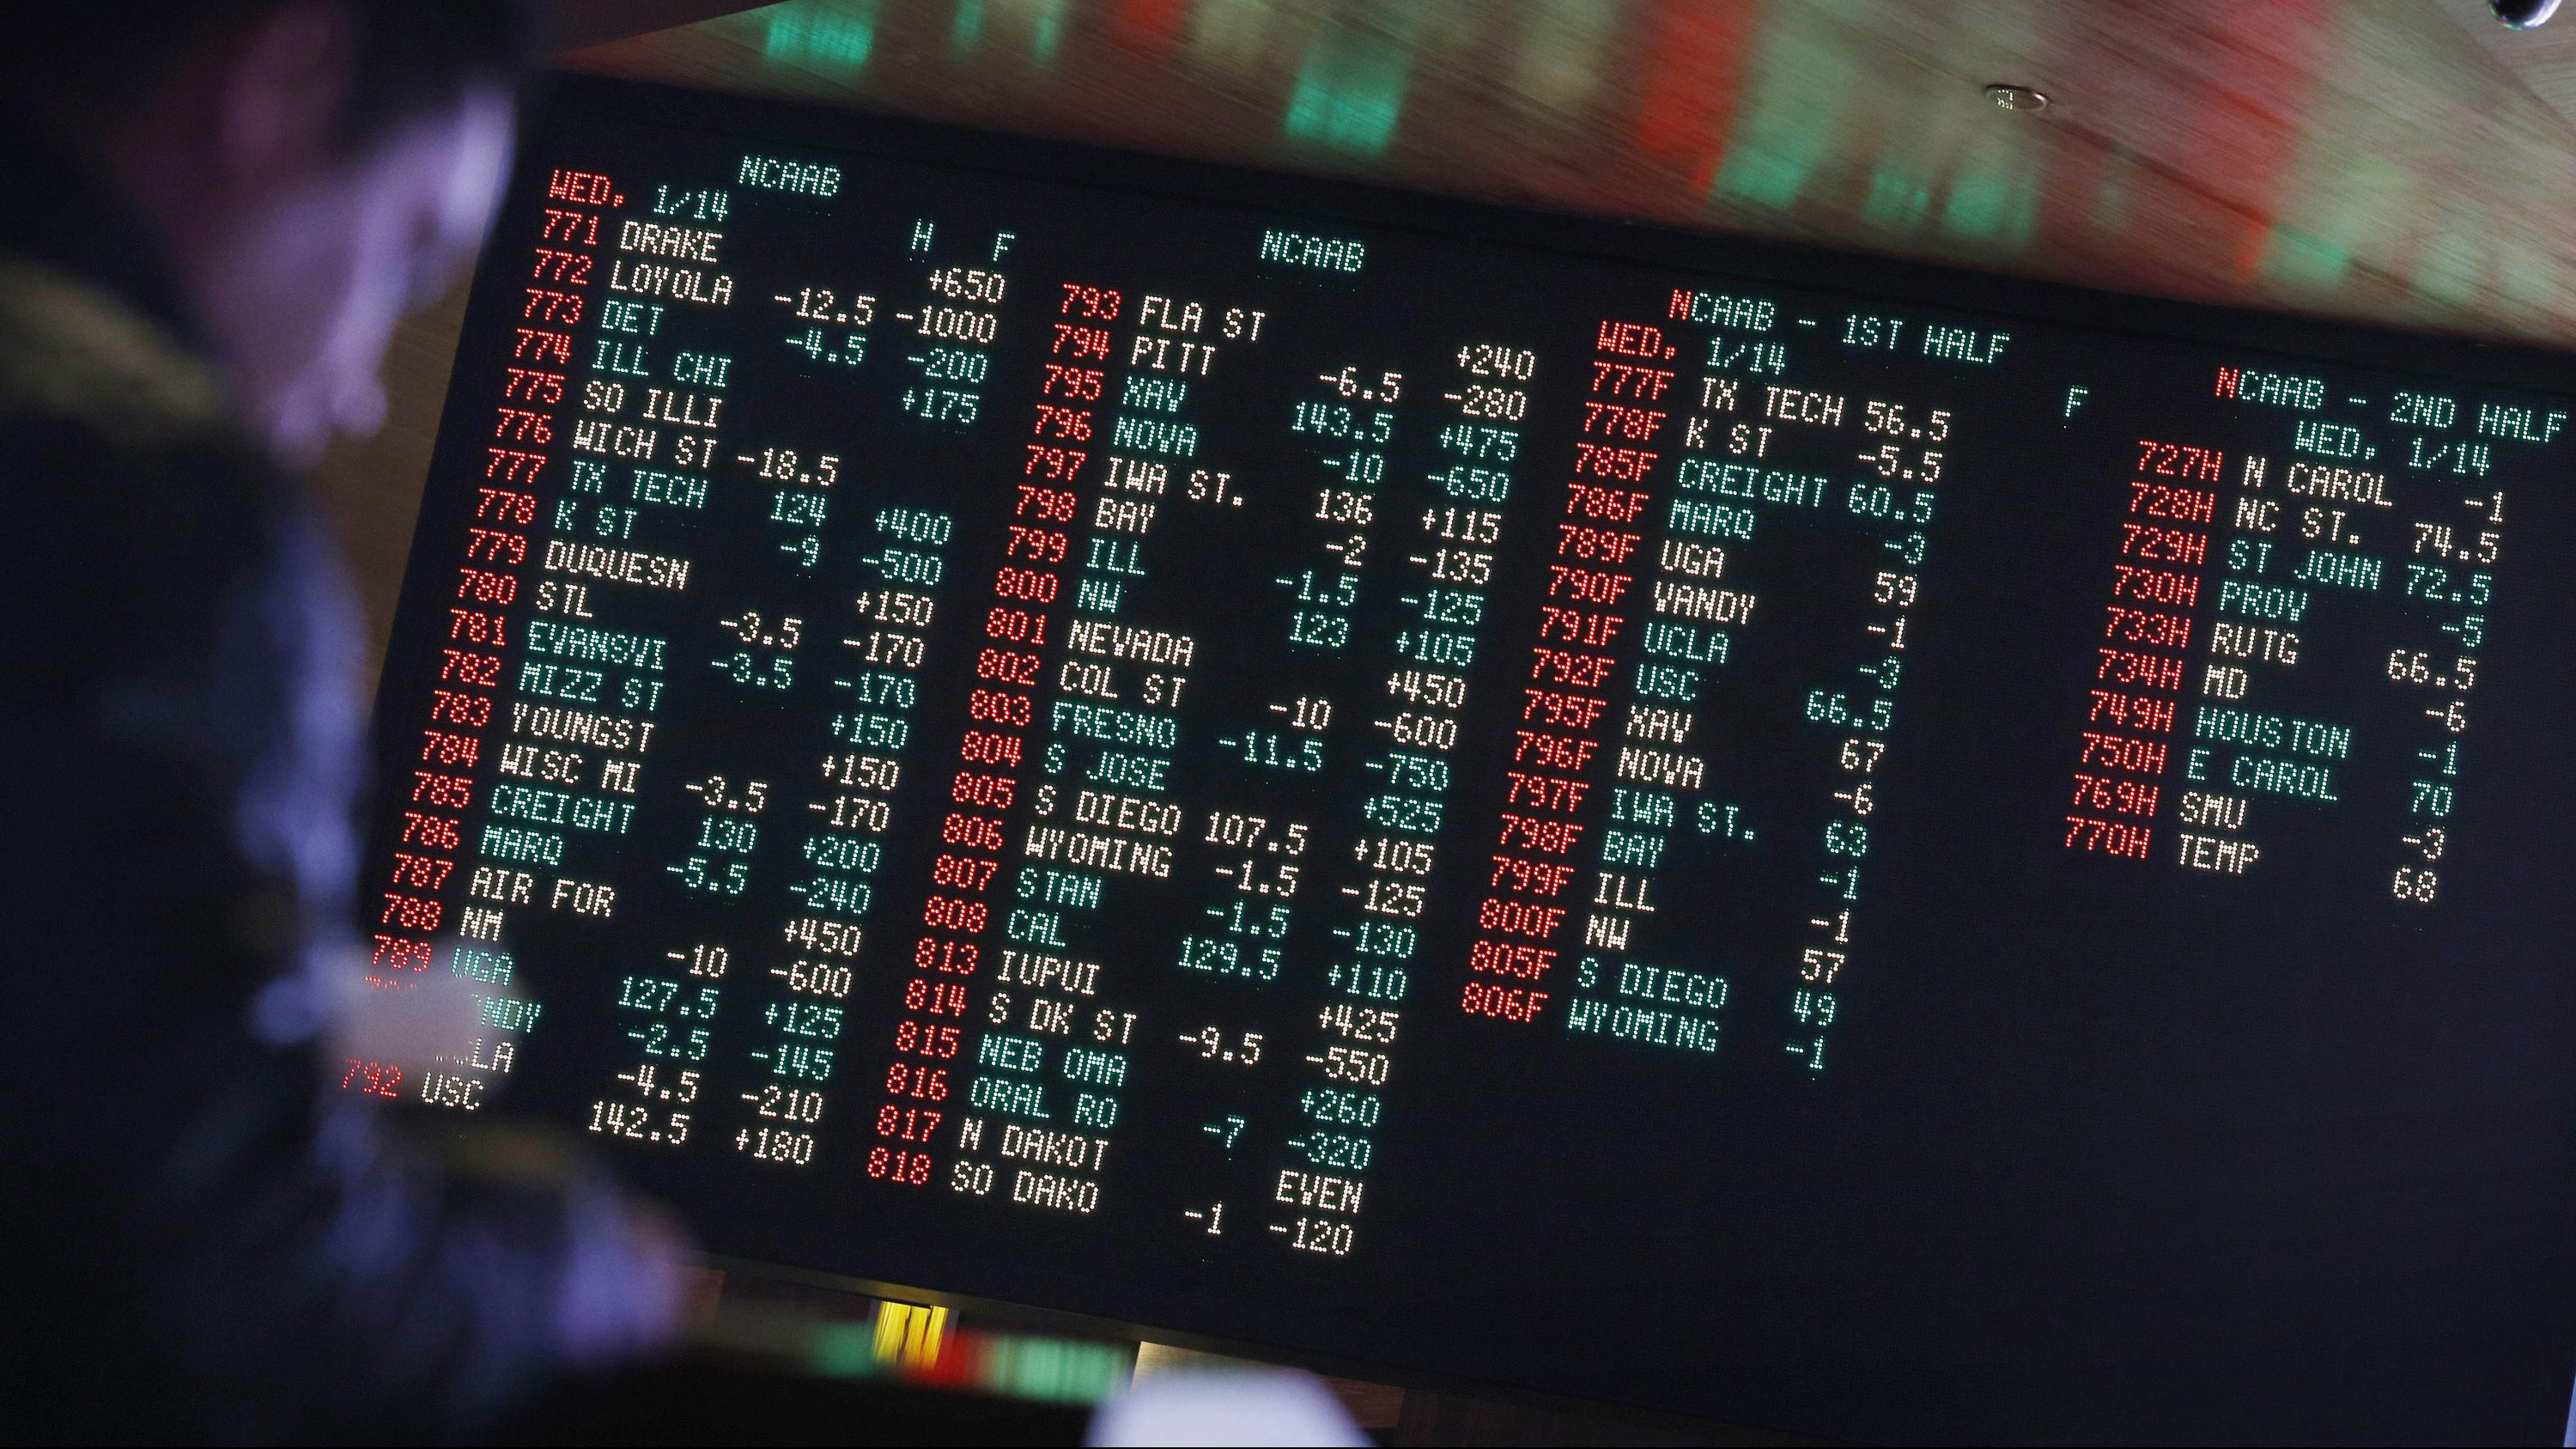 Odds are displayed on a screen at a sports book owned and operated by CG Technology in Las Vegas.